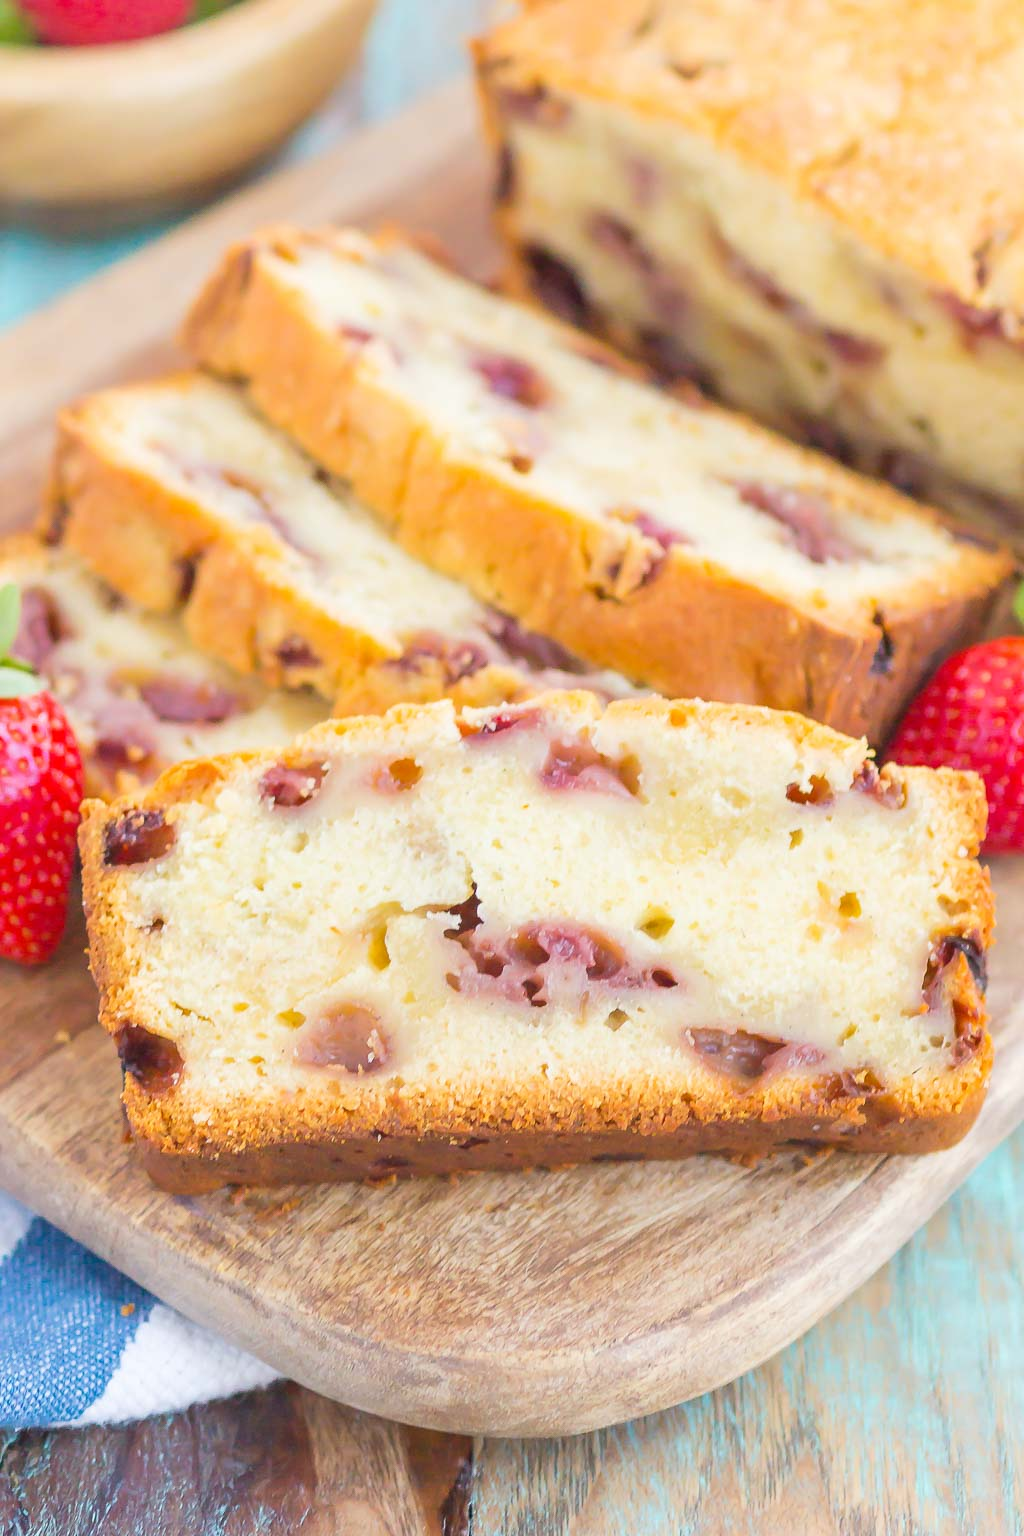 Strawberry Pound Cake is a simple, one bowl recipe that's bursting with flavor. Fresh strawberries are sprinkled throughout this soft and dense pound cake, resulting in the most delicious taste. Perfect to serve alongside your morning coffee or as a tasty dessert! #poundcake #strawberrypoundcake